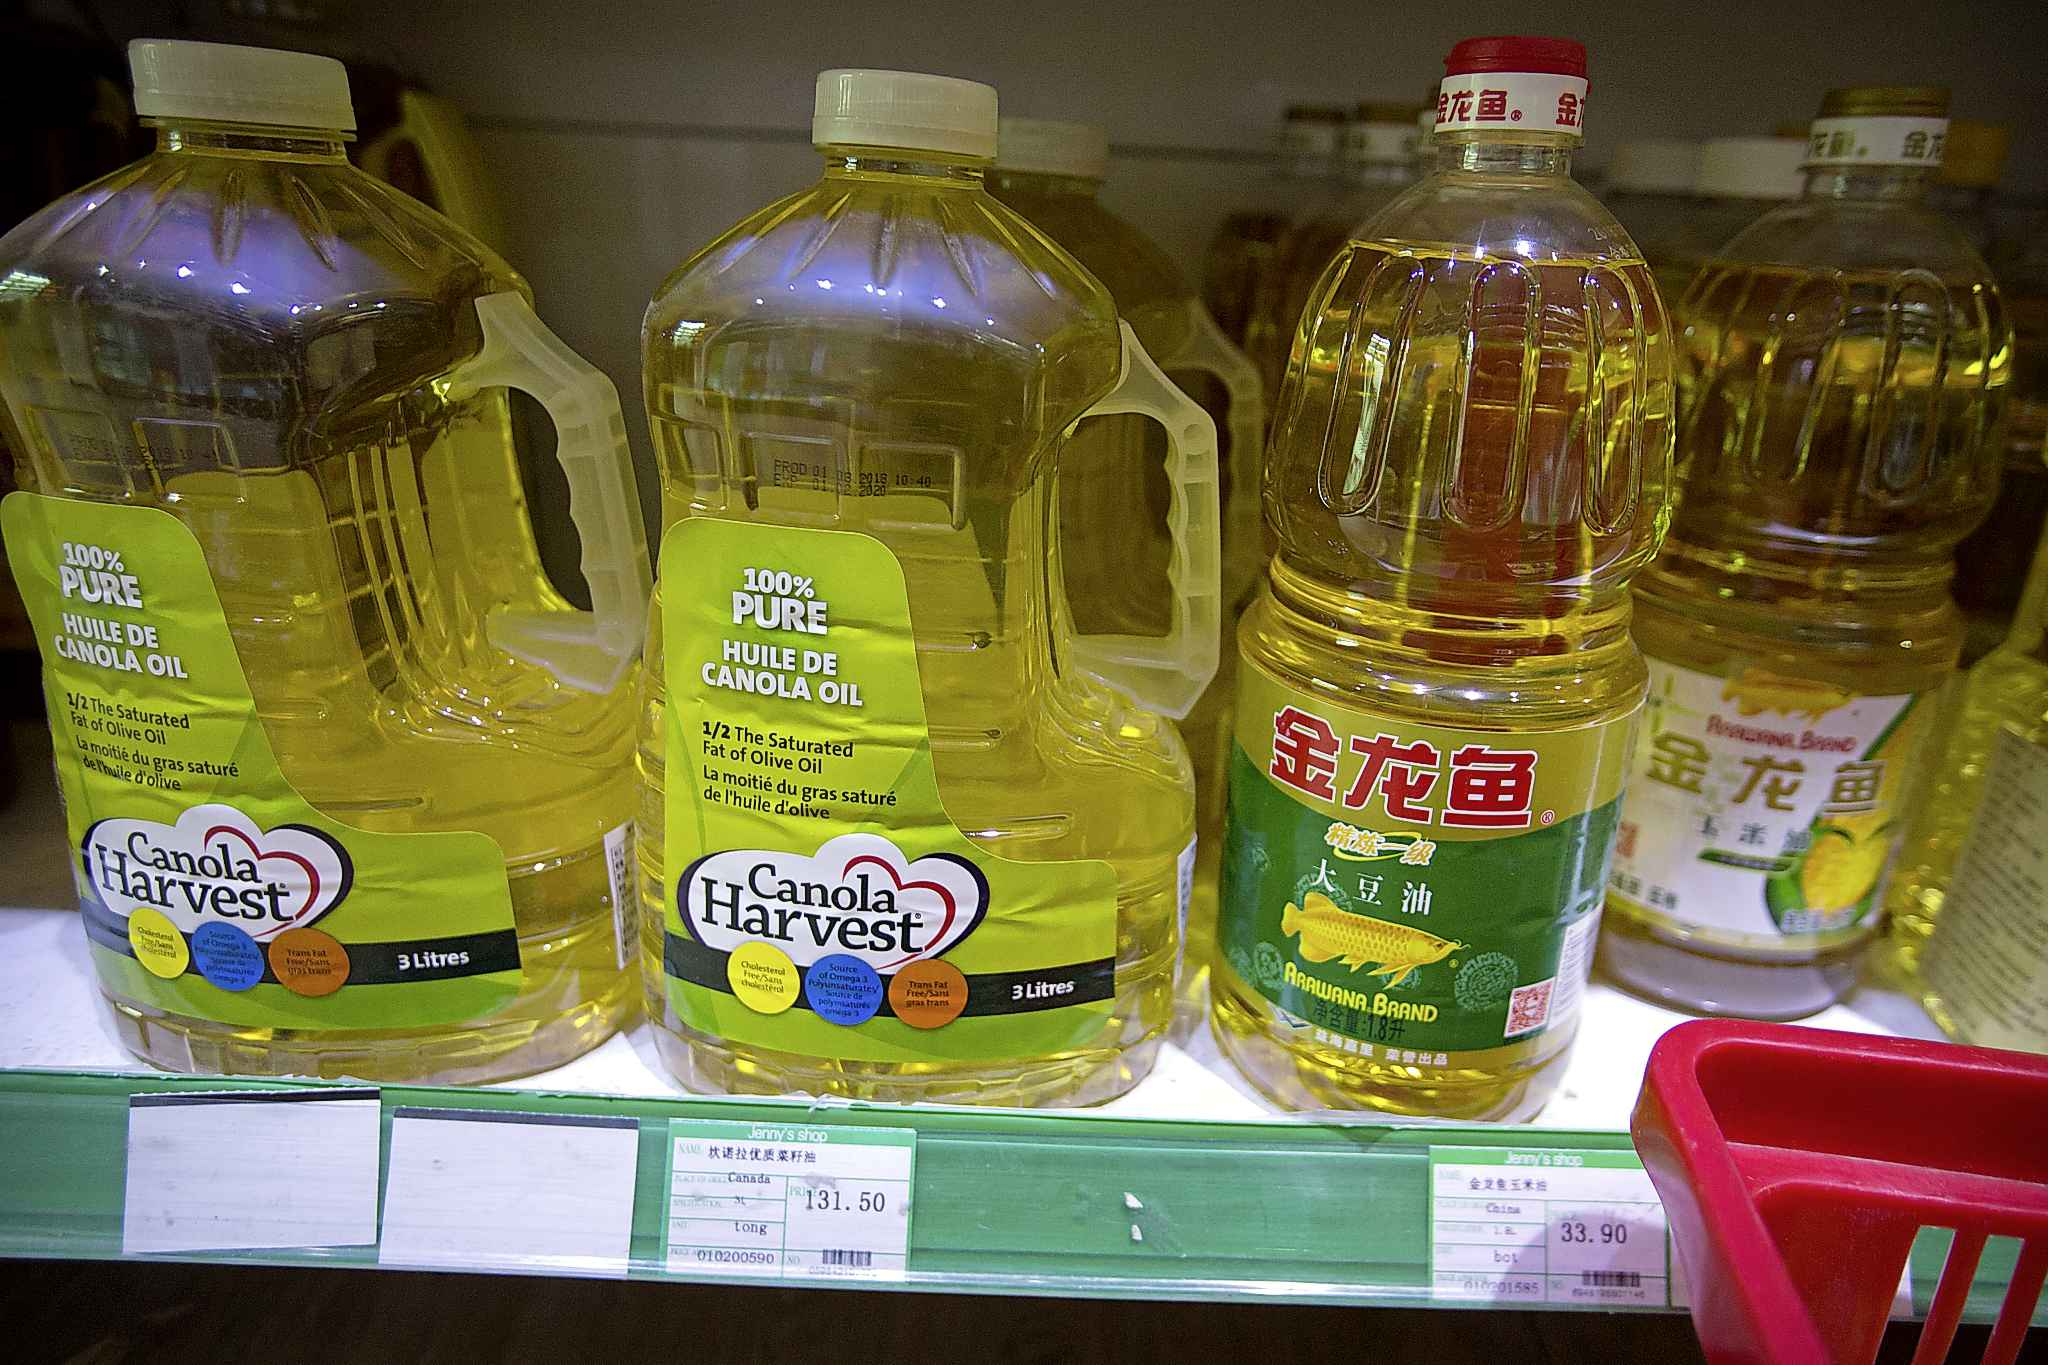 Bottles of Canola Harvest brand canola oil, manufactured by Canadian agribusiness firm Richardson International, on the shelf of a grocery store in Beijing, China.